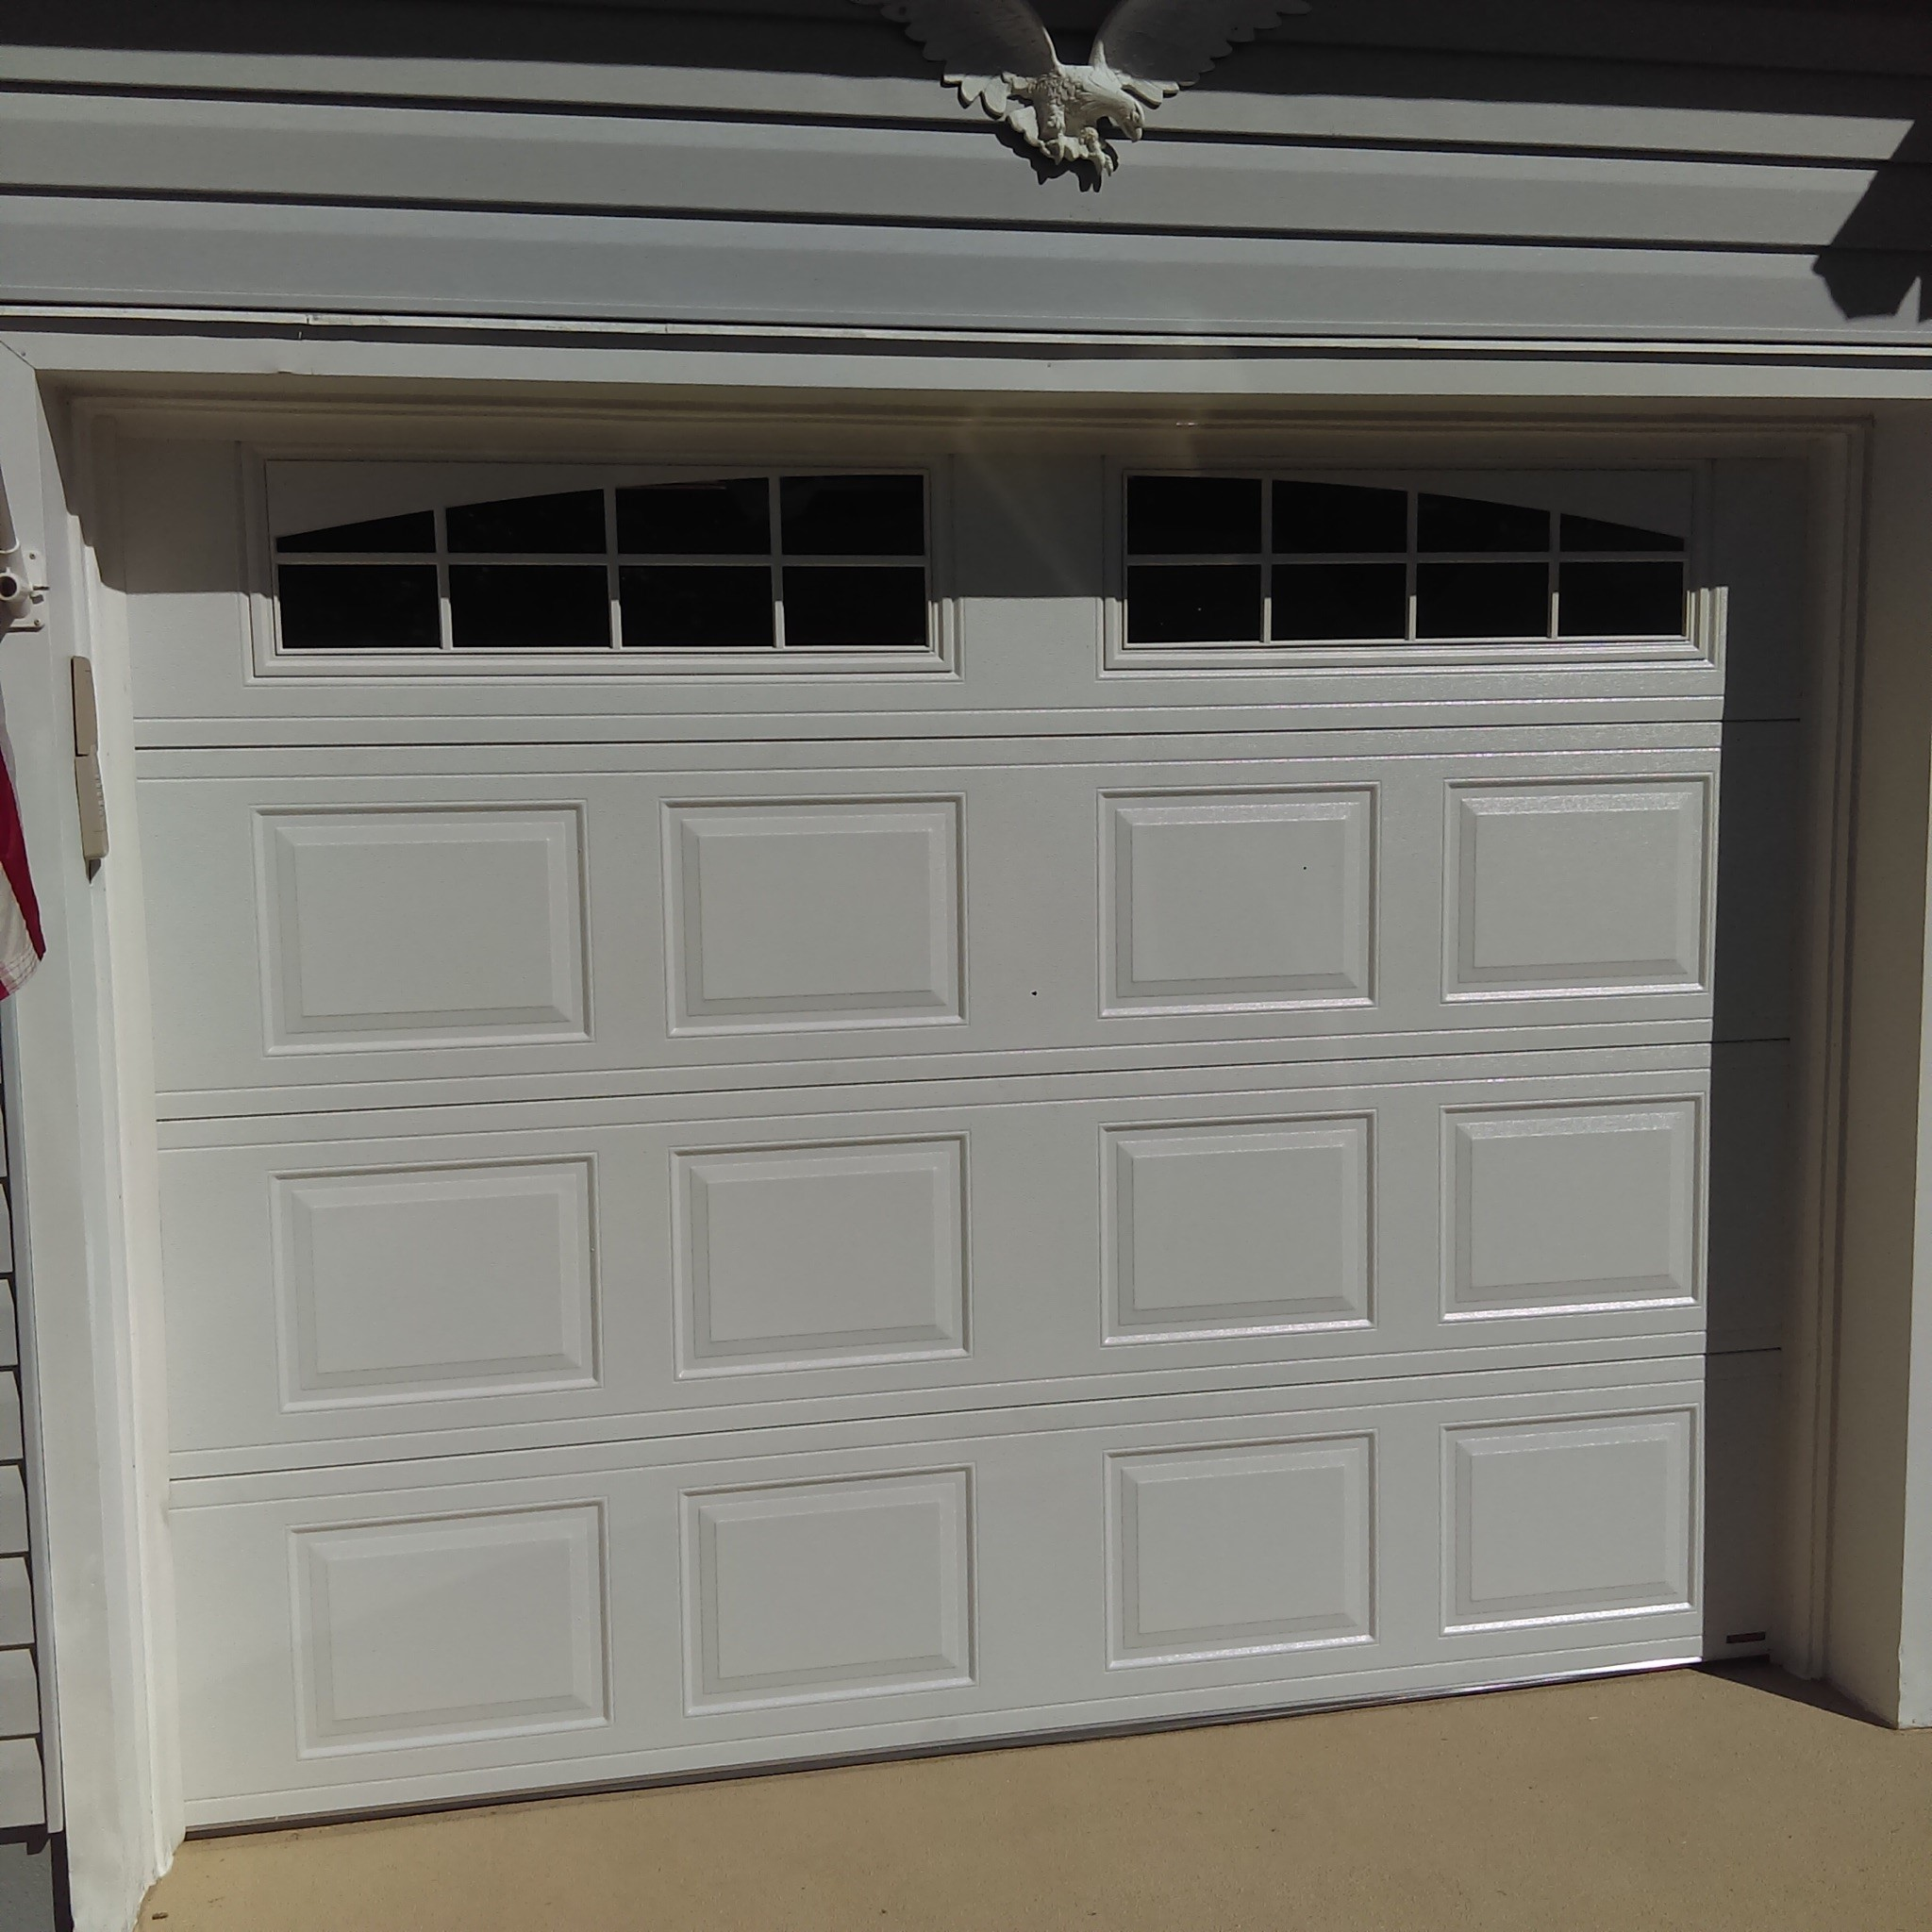 Garage door installation toms river door window for Door window replacement